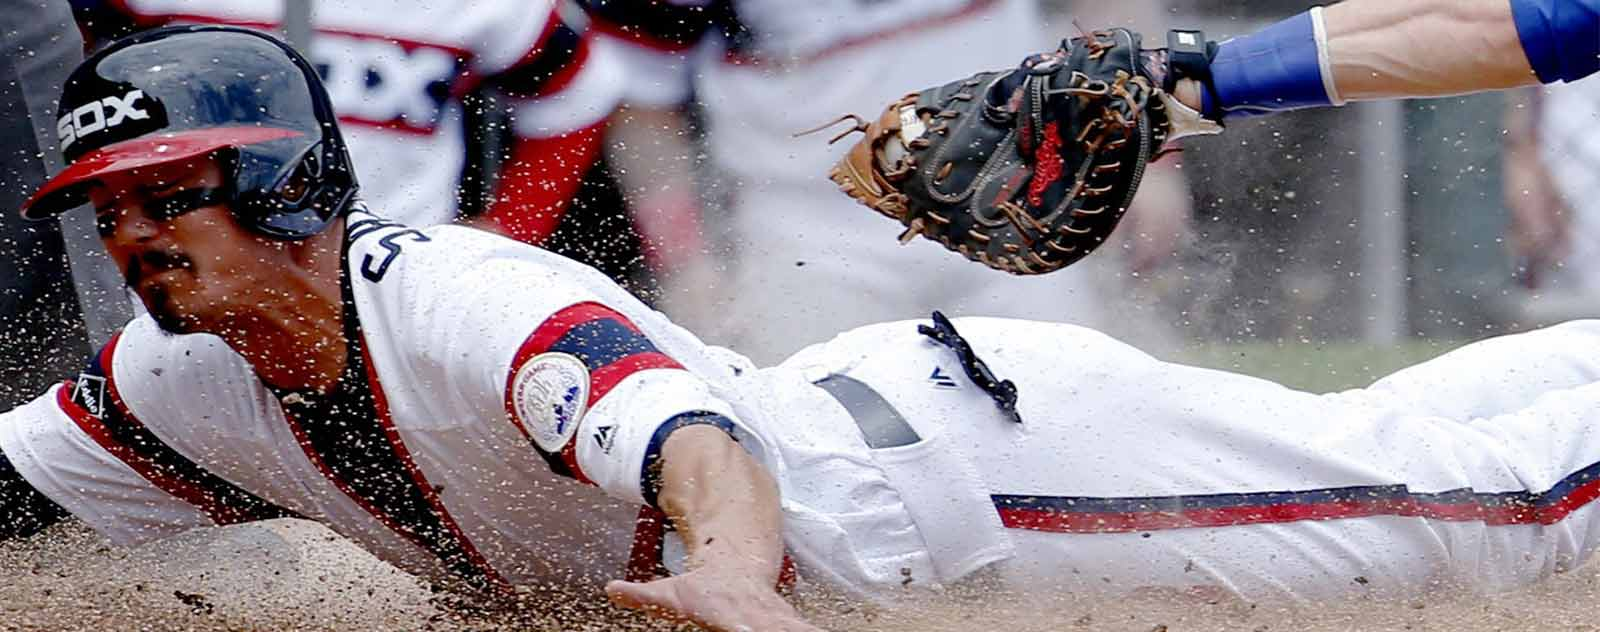 joueur baseball squeeze play